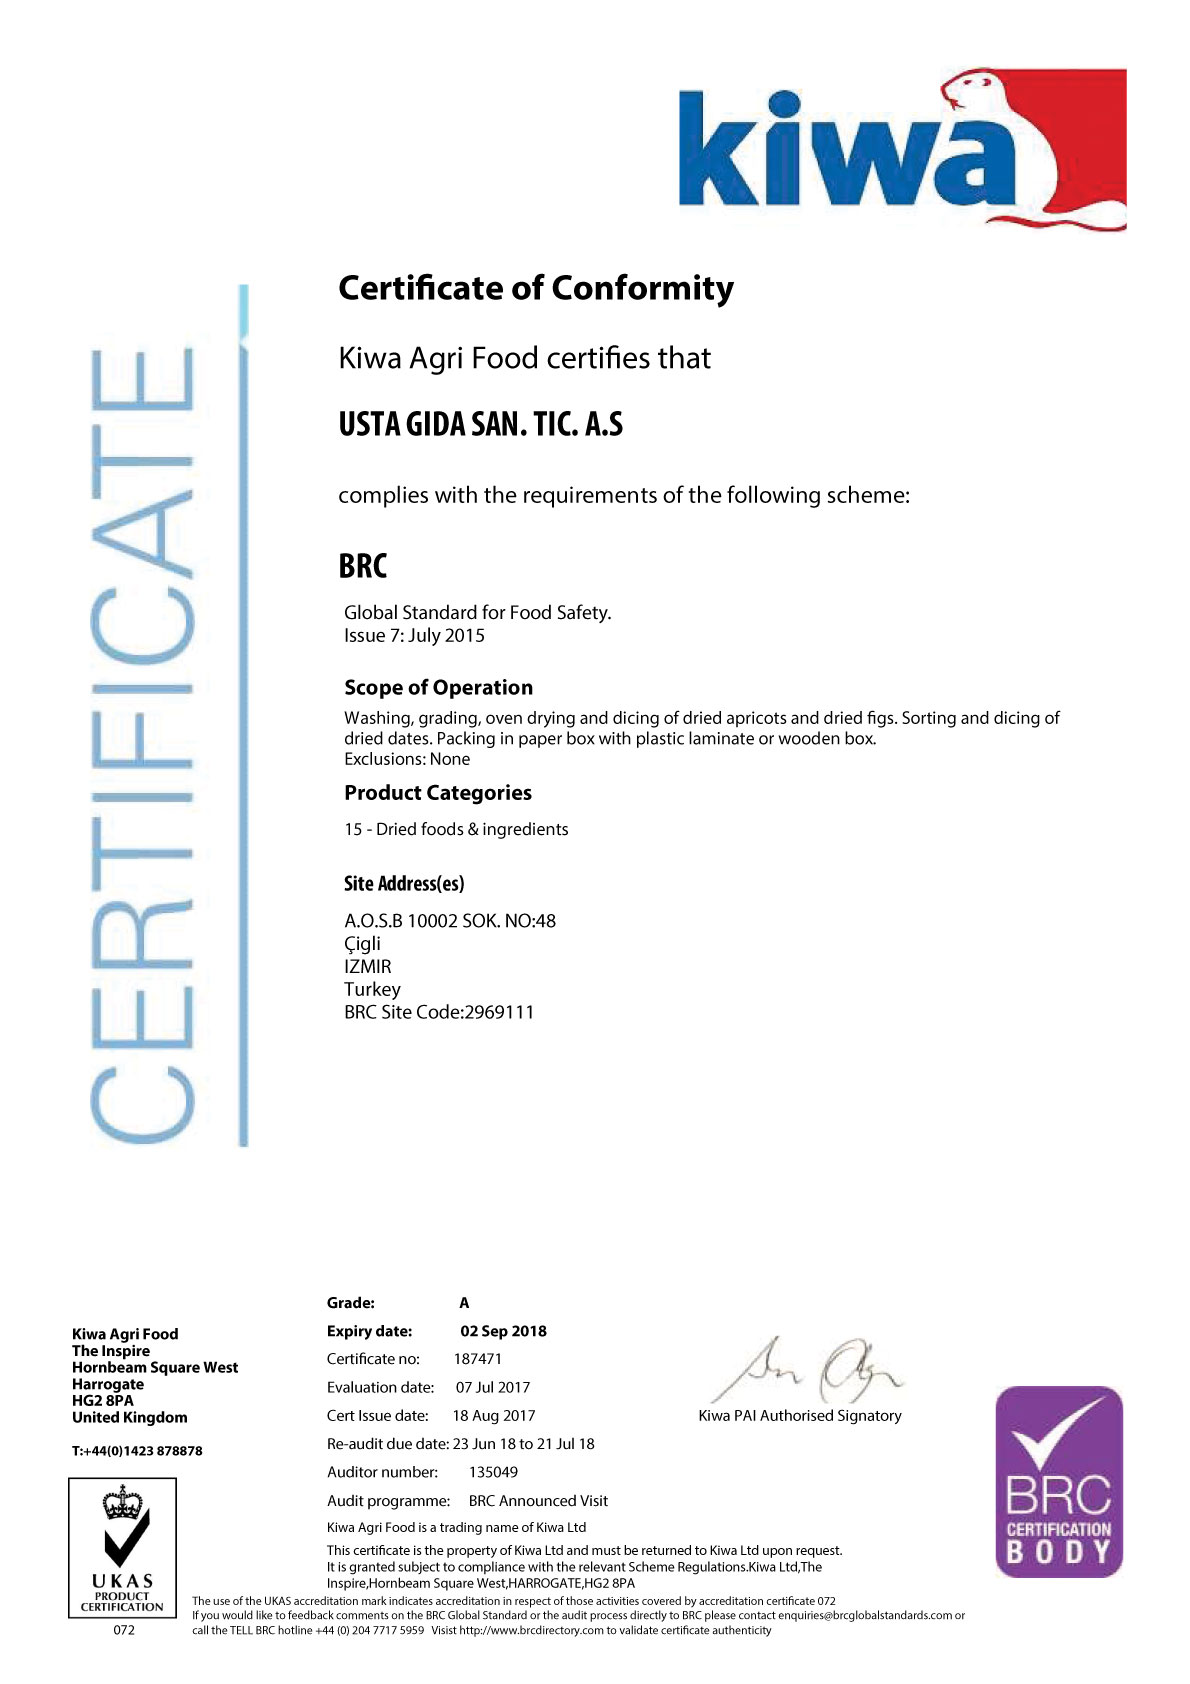 Certificate of Conformity - Usta Food Industry Agricultural